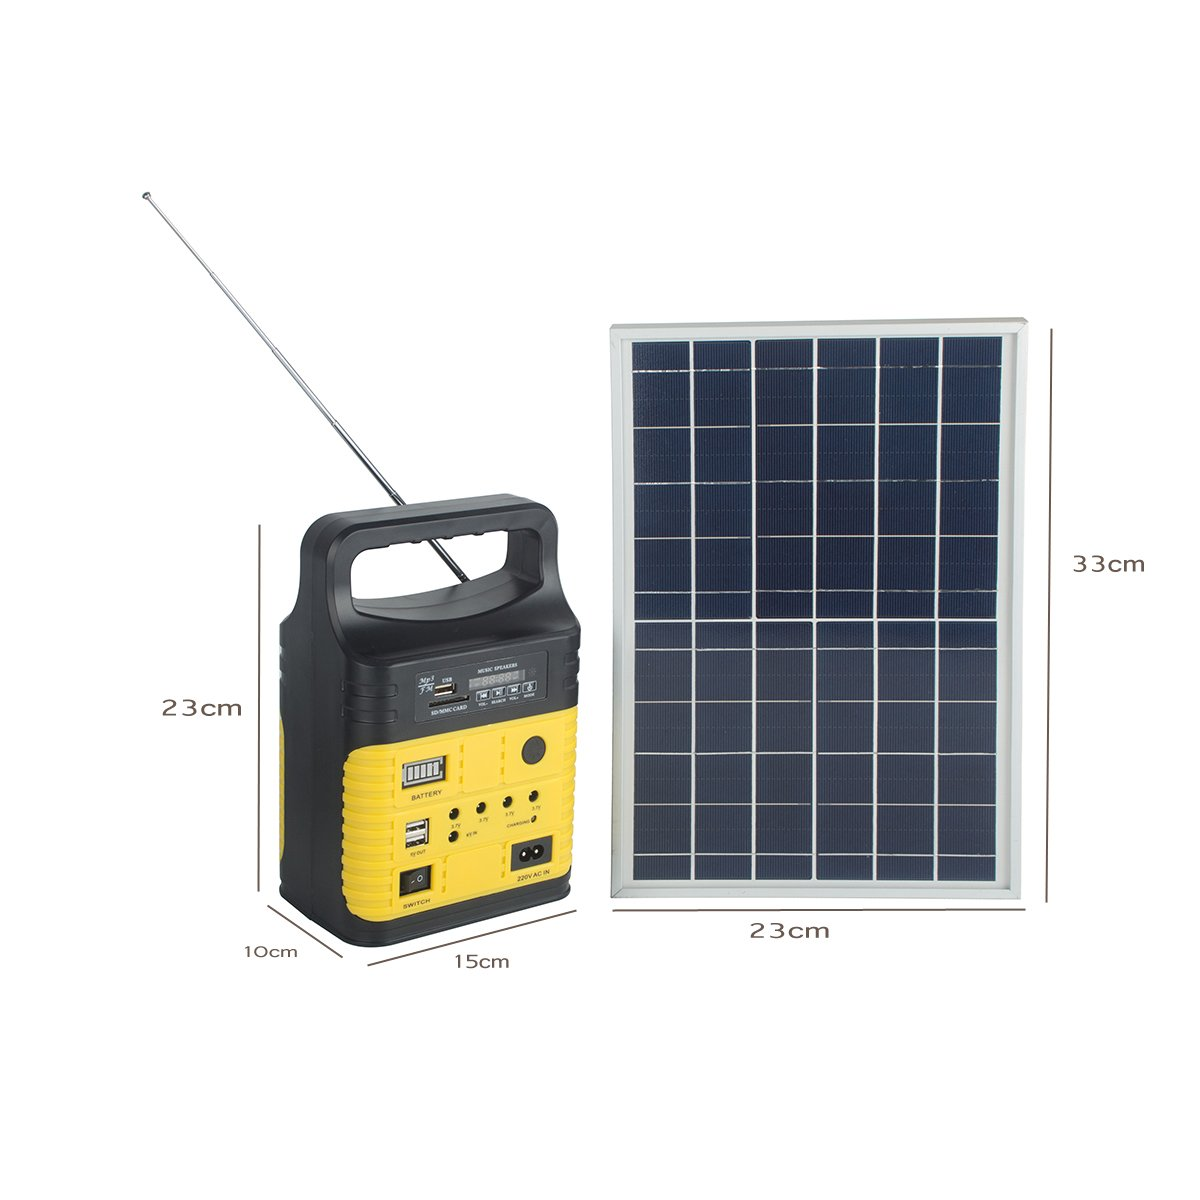 DODOING Solar Power Generator Portable kit, Solar Generator System for Home Garden Outdoor Camping, Power Mini DC6W Solar Panel 6V-9Ah Lead-acid Battery Charging LED Light USB Charger System by DODOING (Image #8)